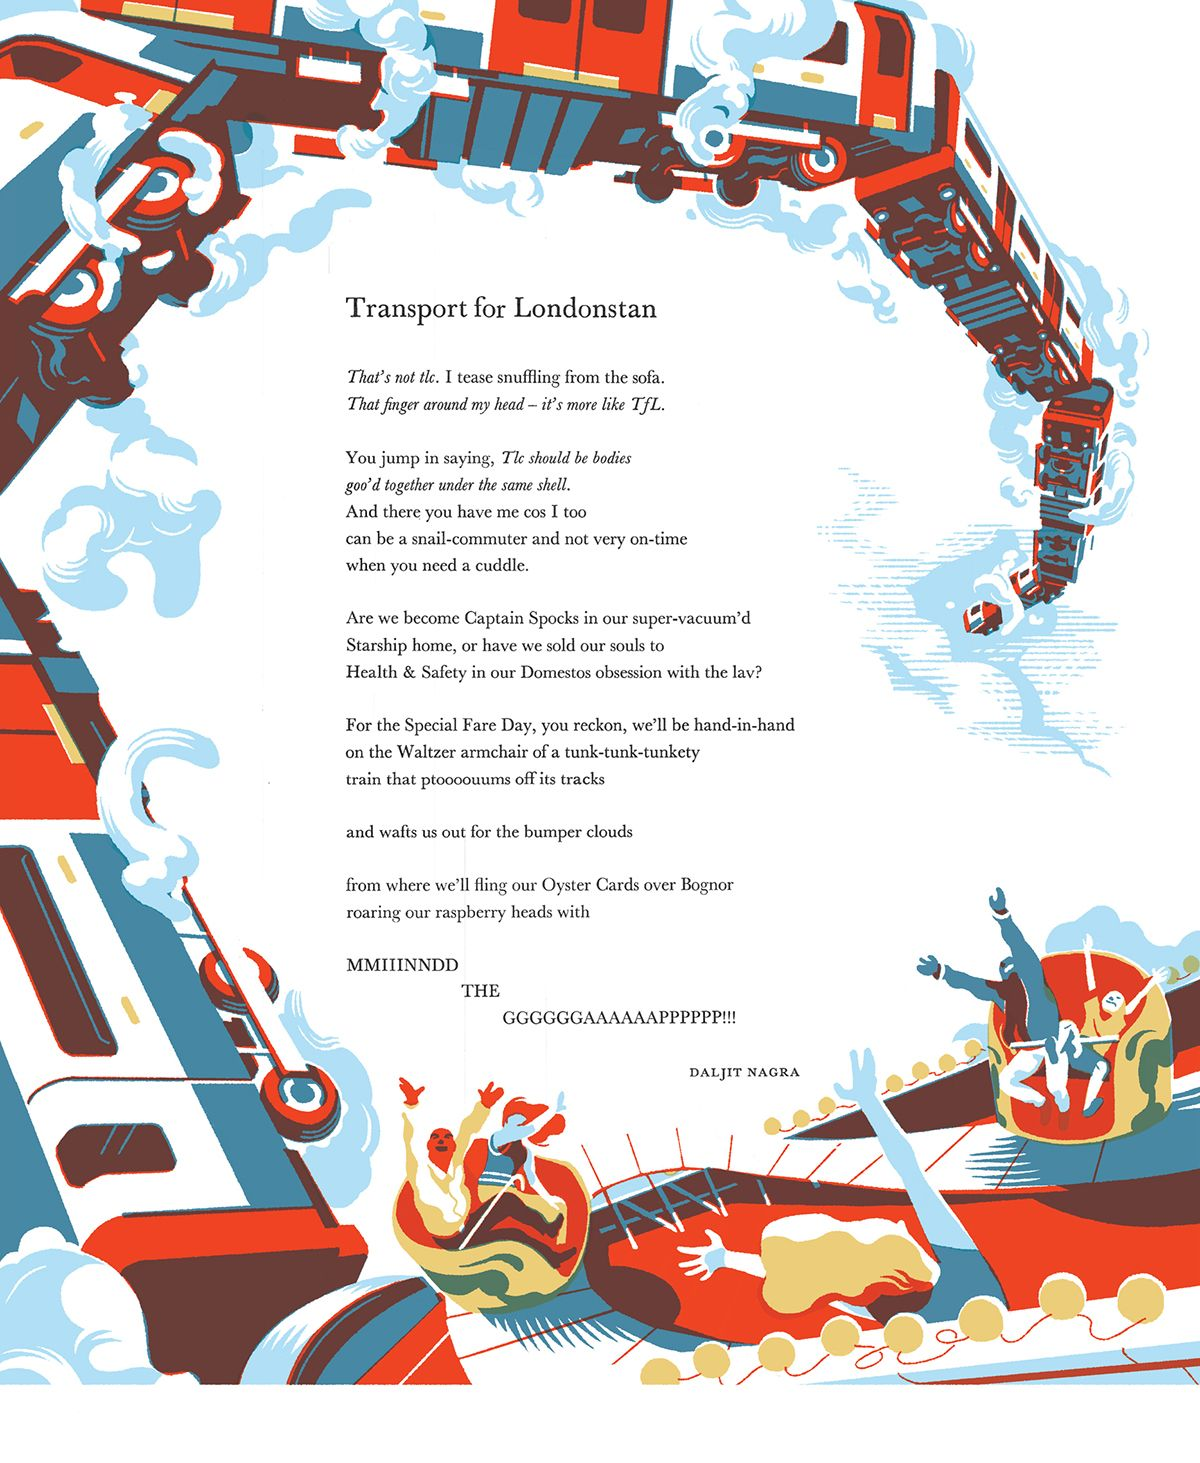 FABER&FABER'S POETRY BROADSIDE - Bruno Mangyoku